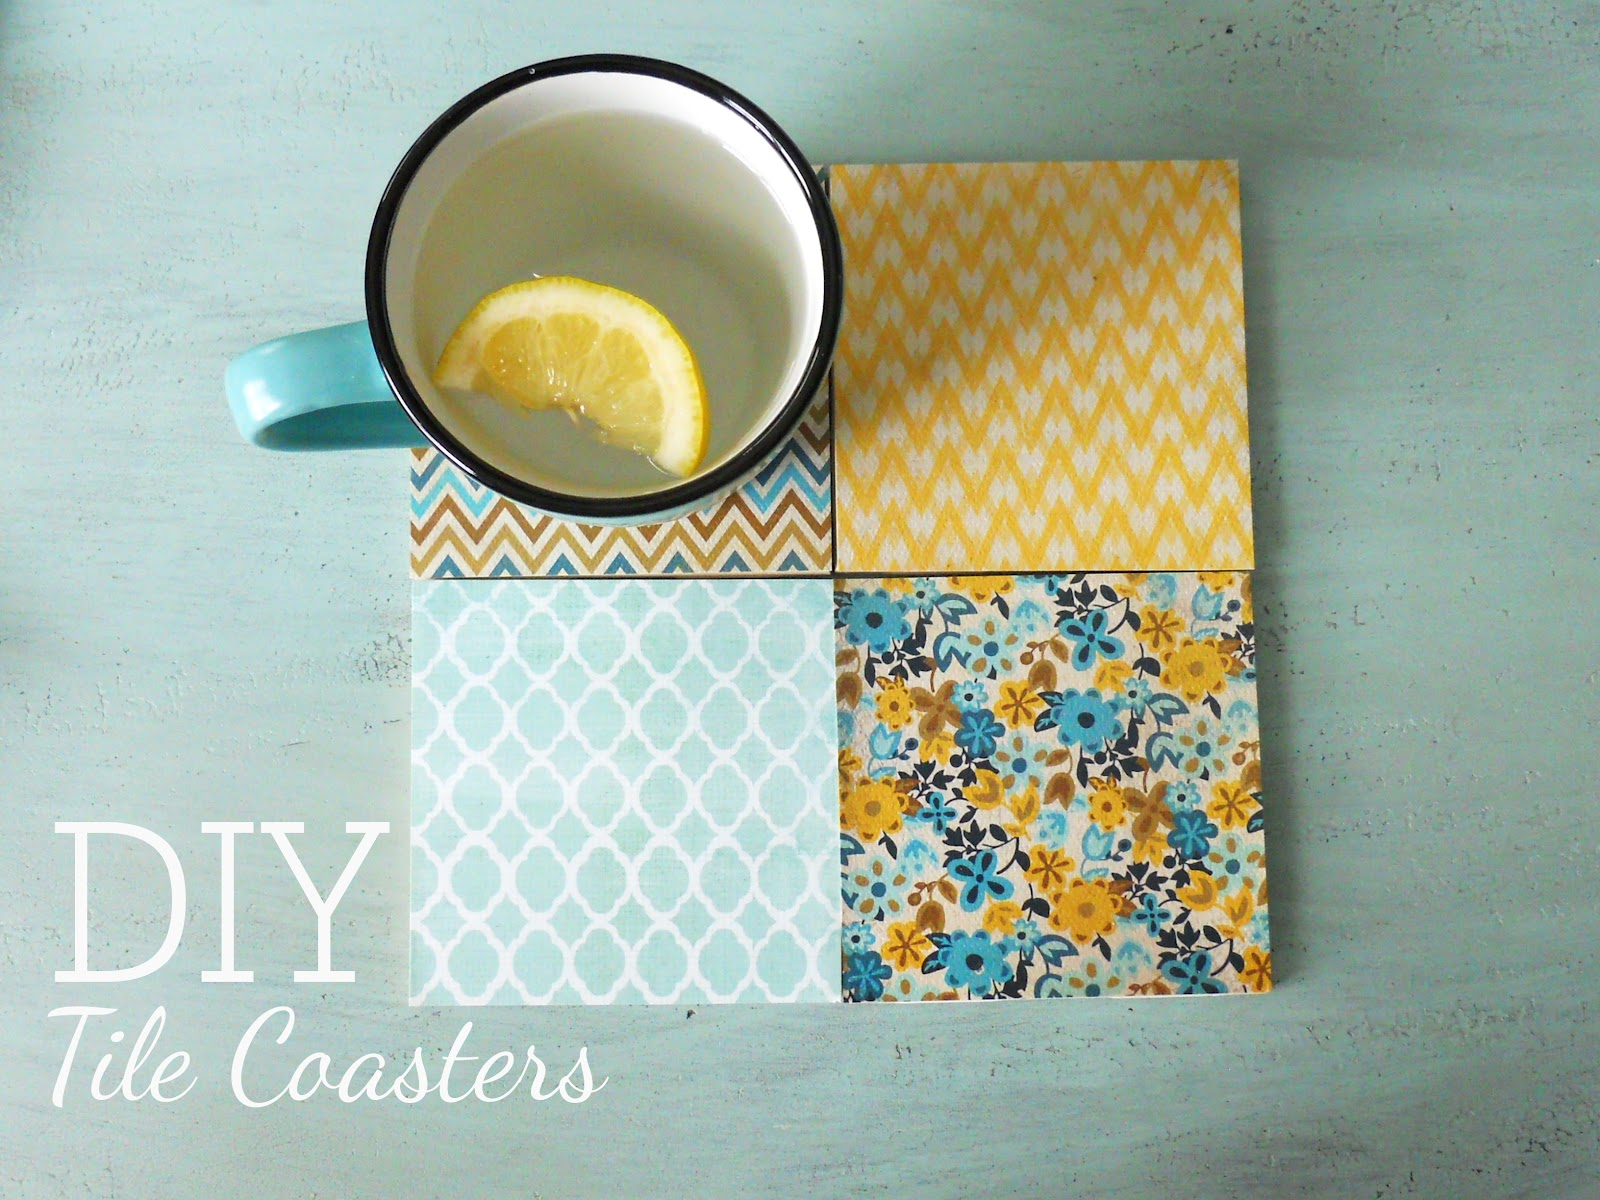 Diy Table Coasters Diy Tile Coasters Delightfully Noted